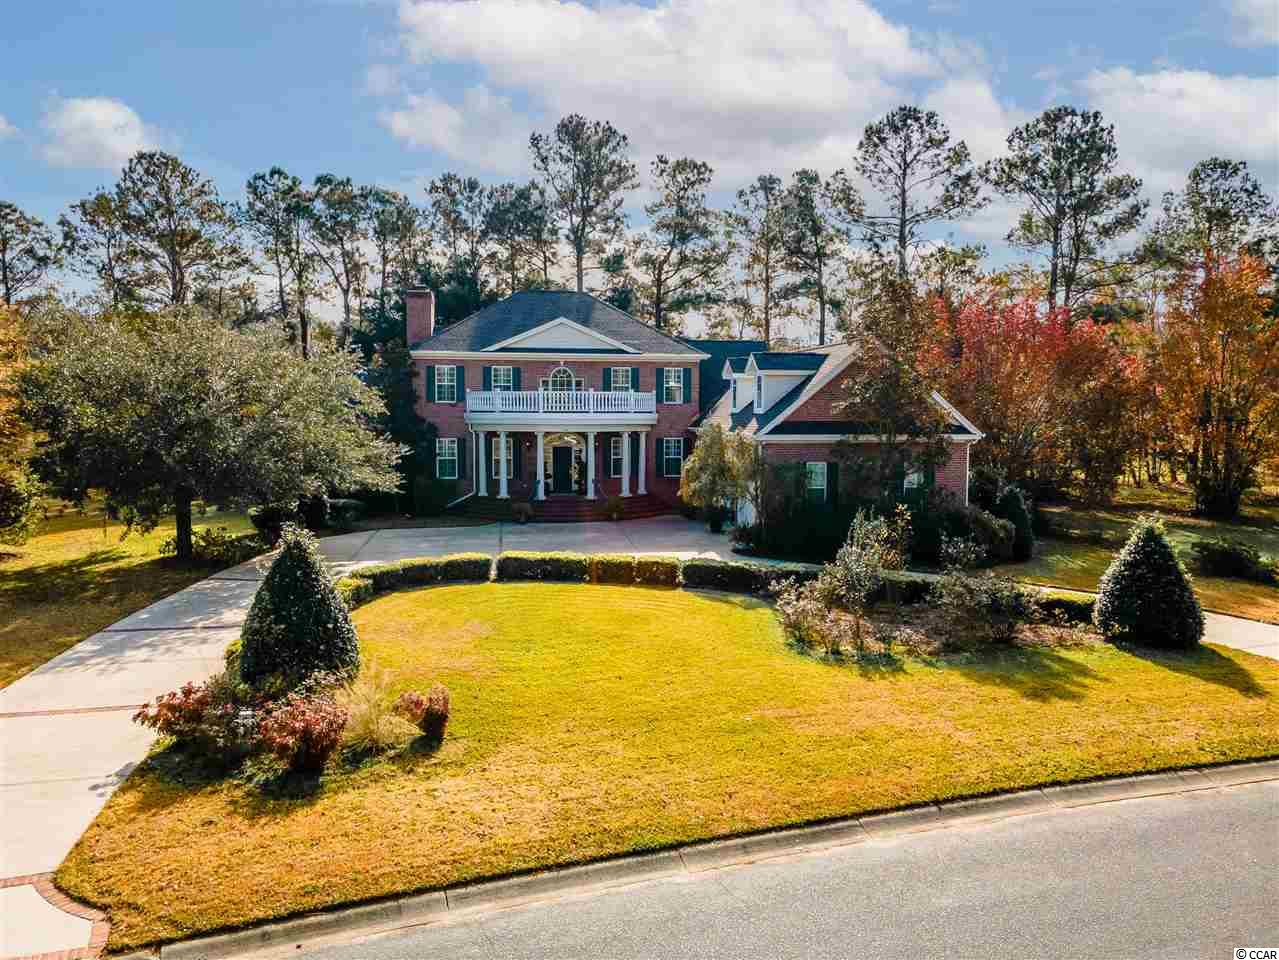 OPEN HOUSE SUNDAY JANUARY 10TH 1-4. Stay on Willbrook Drive until the gate with the guard.  This all brick, Low Country home, has the feeling of a classy elegance, located in one of the most desired neighborhoods in all of the Grand Strand, Willbrook Plantation.  Located in beautiful Pawleys Island, where you find  Spanish Moss draped from the Elder Oaks, you have the feeling of peace and serenity in this amazing community. This home features 5 bedrooms with the Master on the first floor, 4 full bathrooms that allow family and guests full privacy, and two half baths for those days of entertaining. A custom kitchen with a flowing floor plan that leads to a breakfast area with stunning amounts of light. A beautiful family room with a cozy fireplace centers this home, and leads to an all brick back porch that features mature Oaks and views of the famous Willbrook Golf Course. A private sitting area with it's own wood burning fireplace is a perfect place for a peaceful evening.  The roof was replaced in 2019, three HVAC systems, a crawl space New Dehumidifier, and two guard gates for added security.  The community has Beach access to Litchfield by the Sea that is accessible via golf cart or by car and a wonderful resident only clubhouse with a private community pool.  This should be on your list for your forever home.